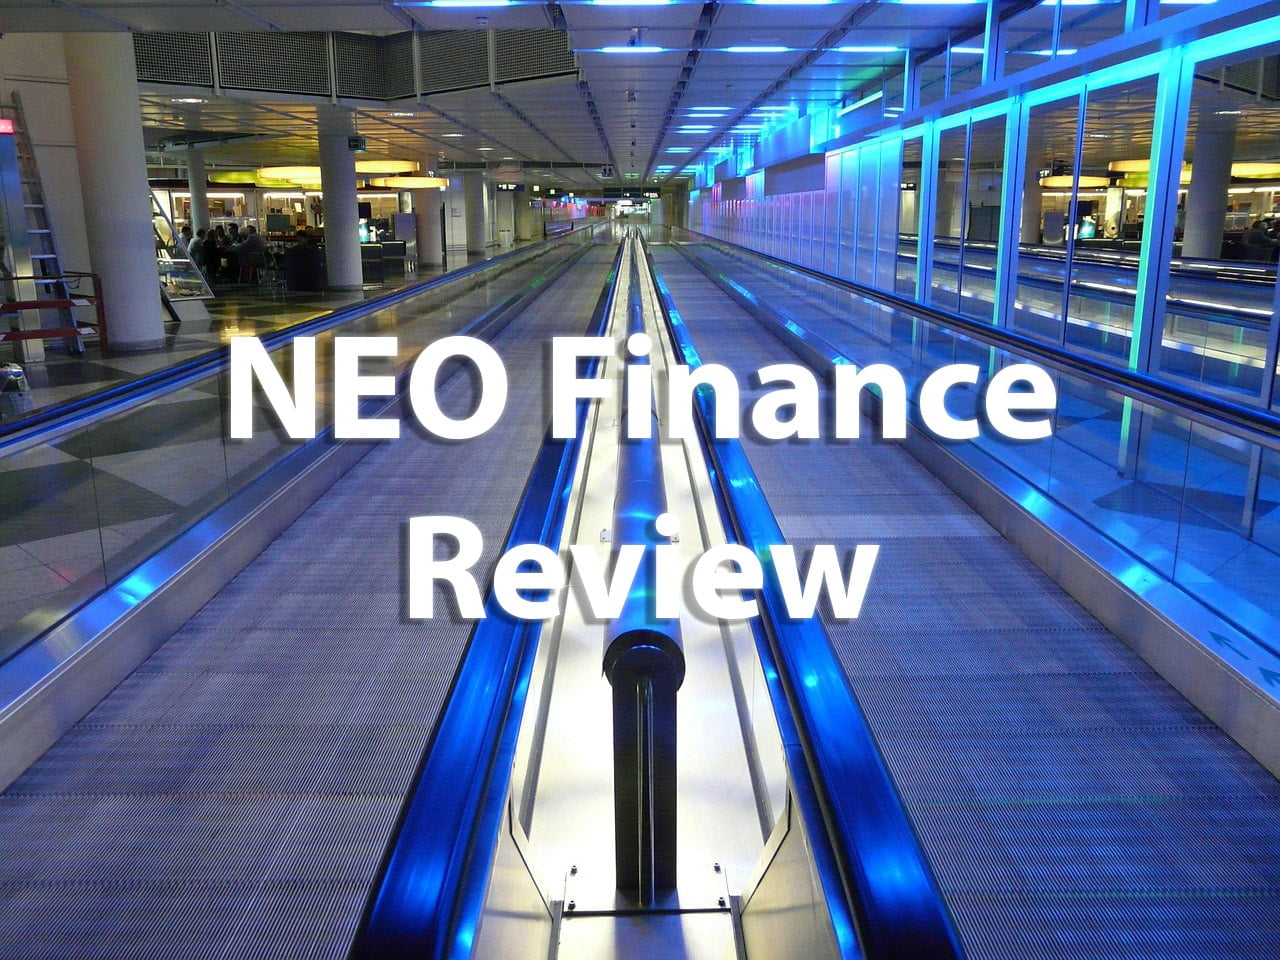 neo finance review